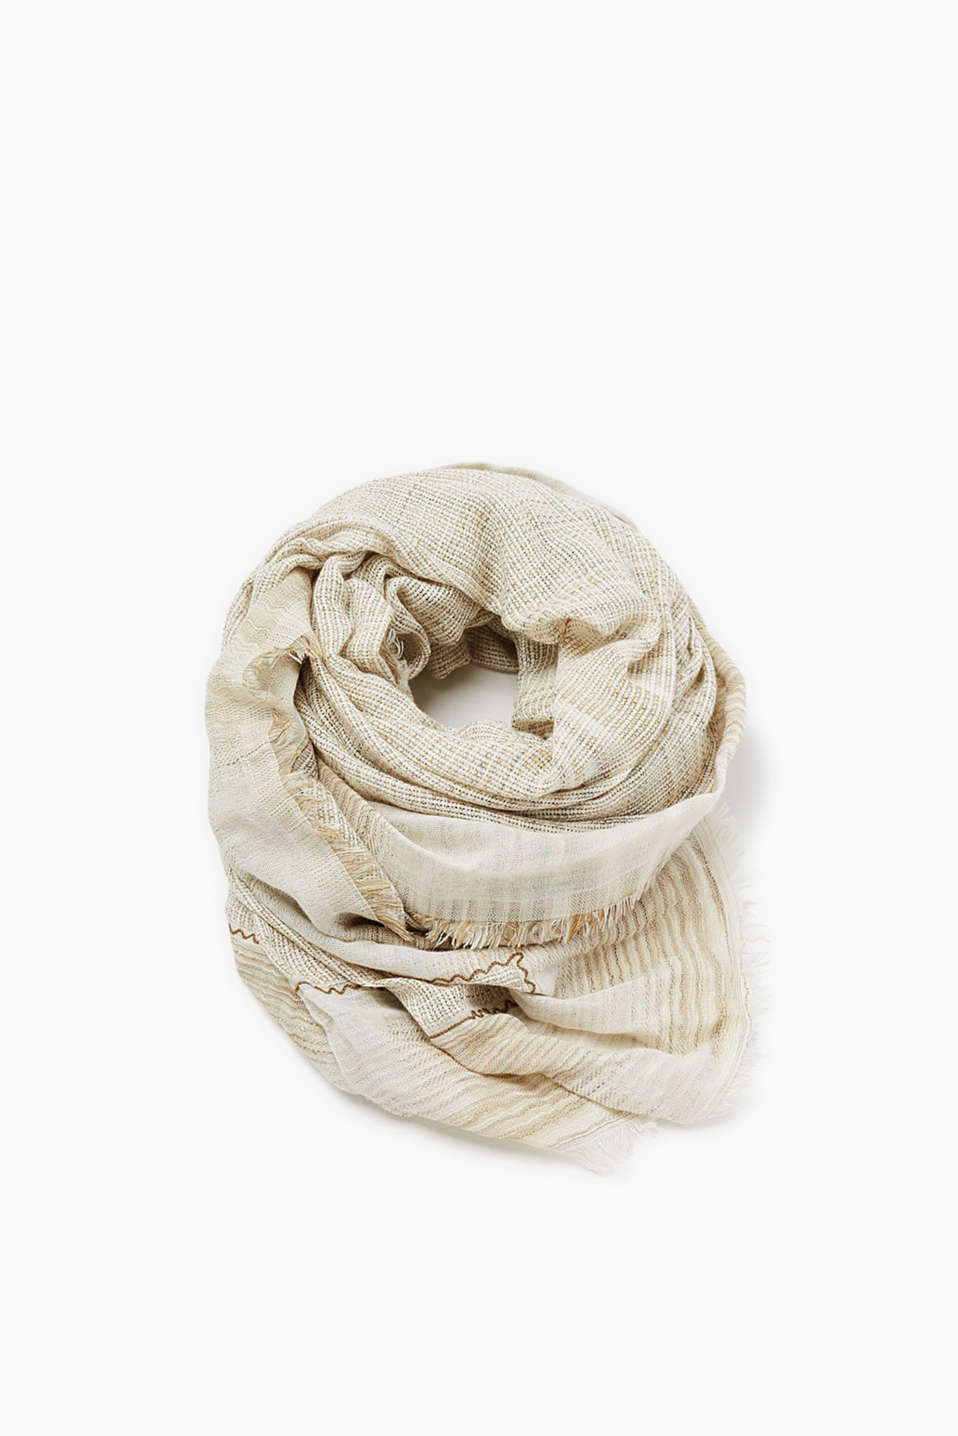 Scarf in soft blended cotton with a high-quality woven texture